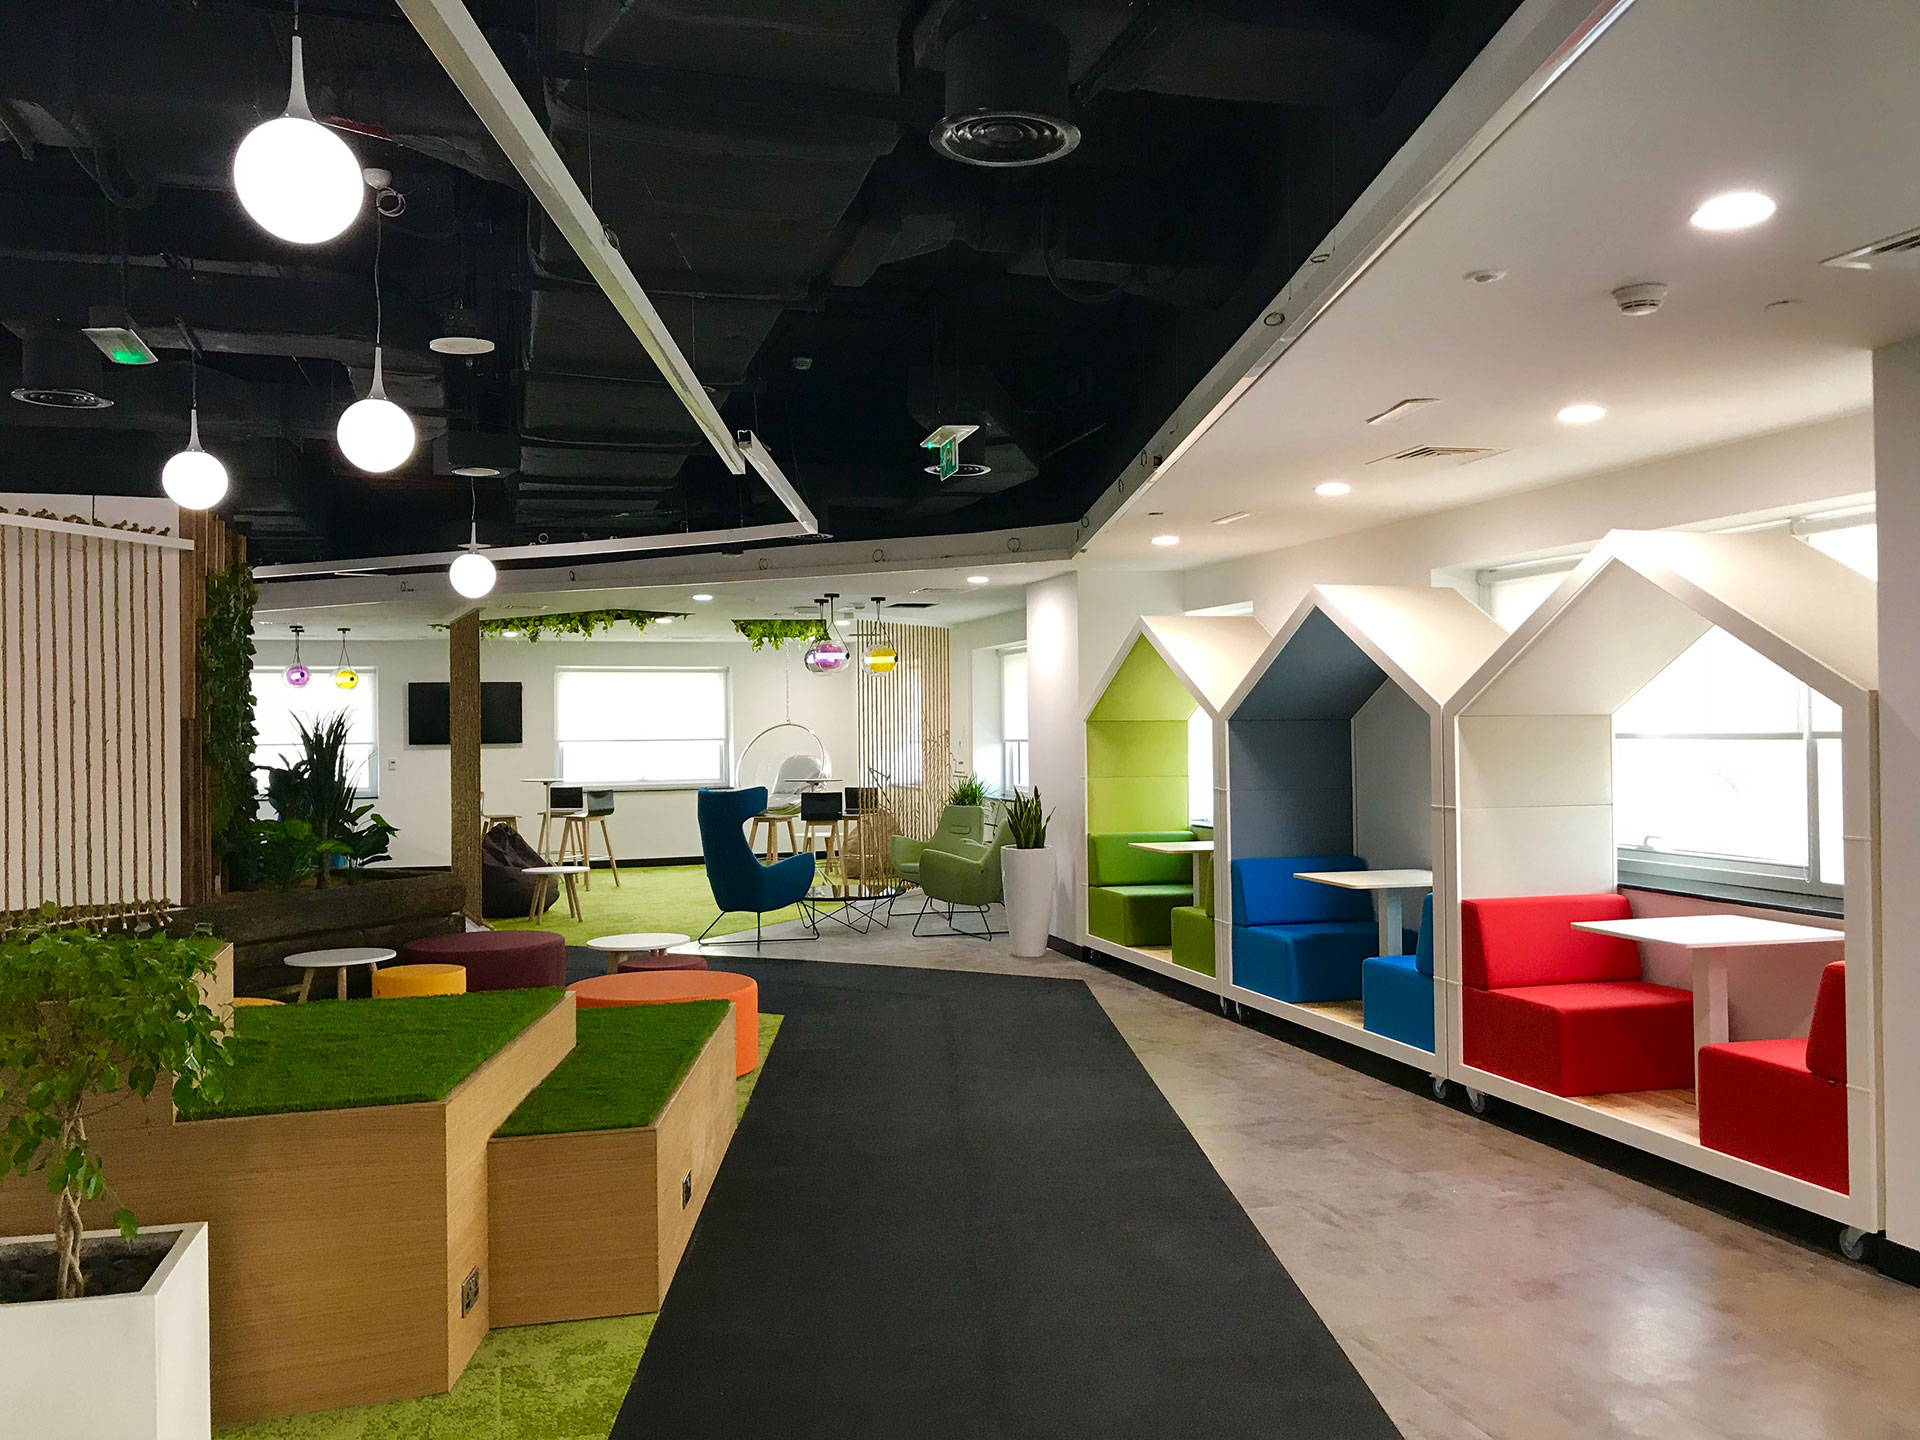 Dewa S New Office Featured Online With Commercial Interior